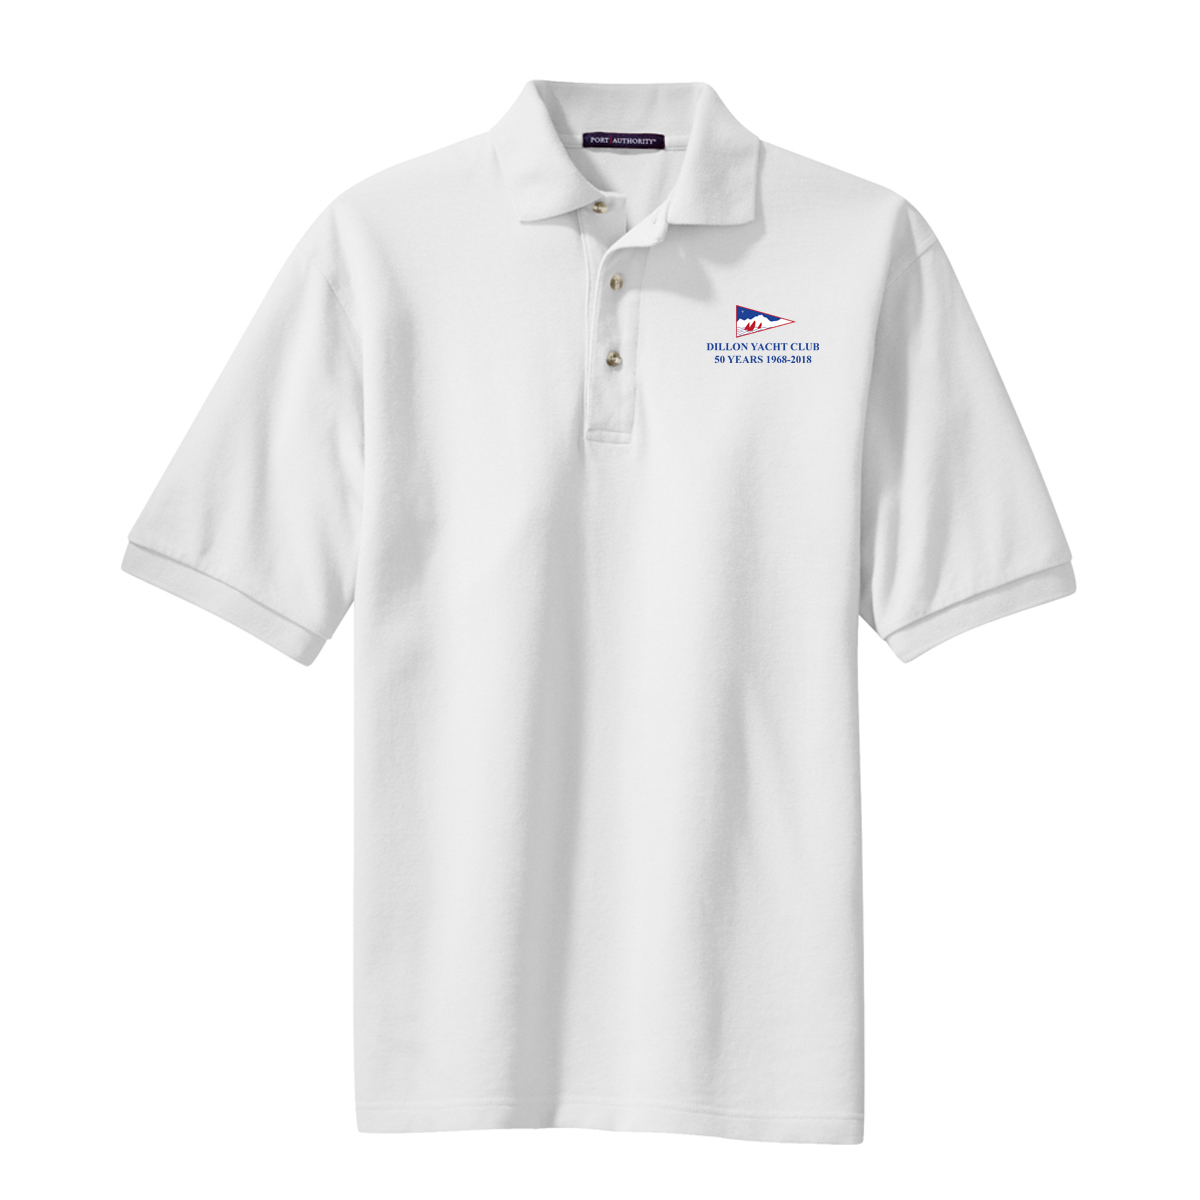 DILLON YACHT CLUB 50YR- M'S COTTON POLO